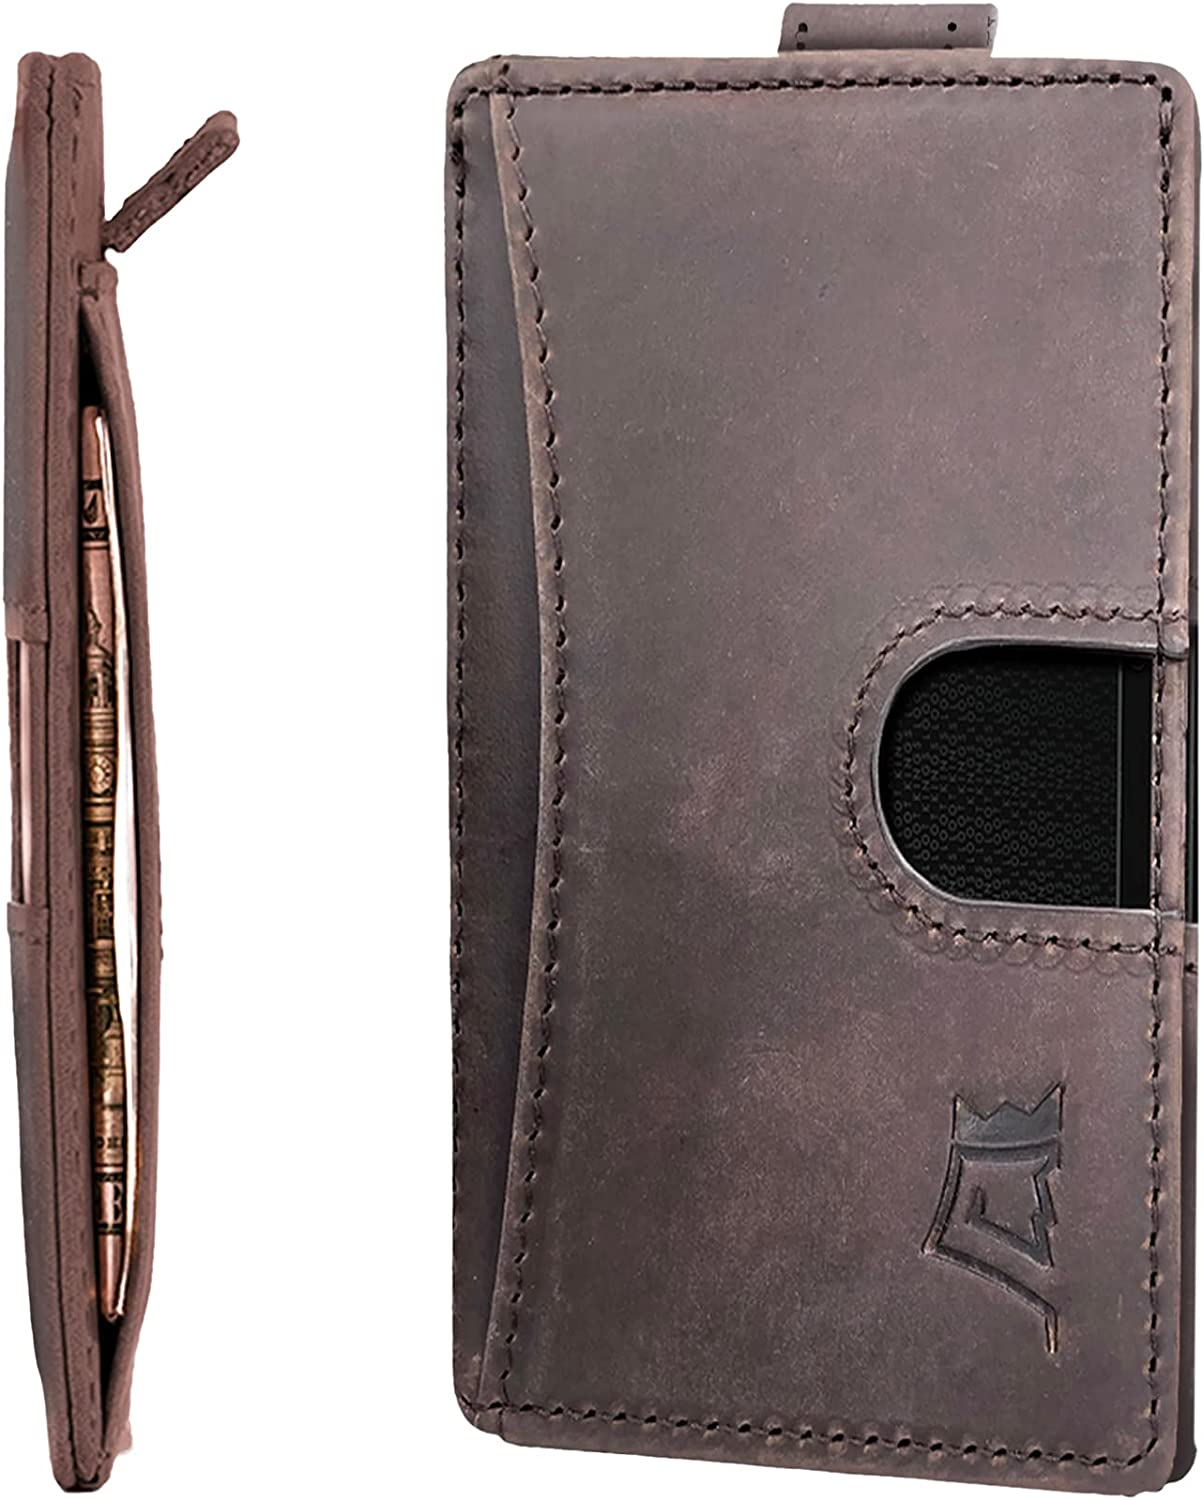 Kings Popular brand in the world Loot Full Grain Leather Front Pocket service Wallet Men – for